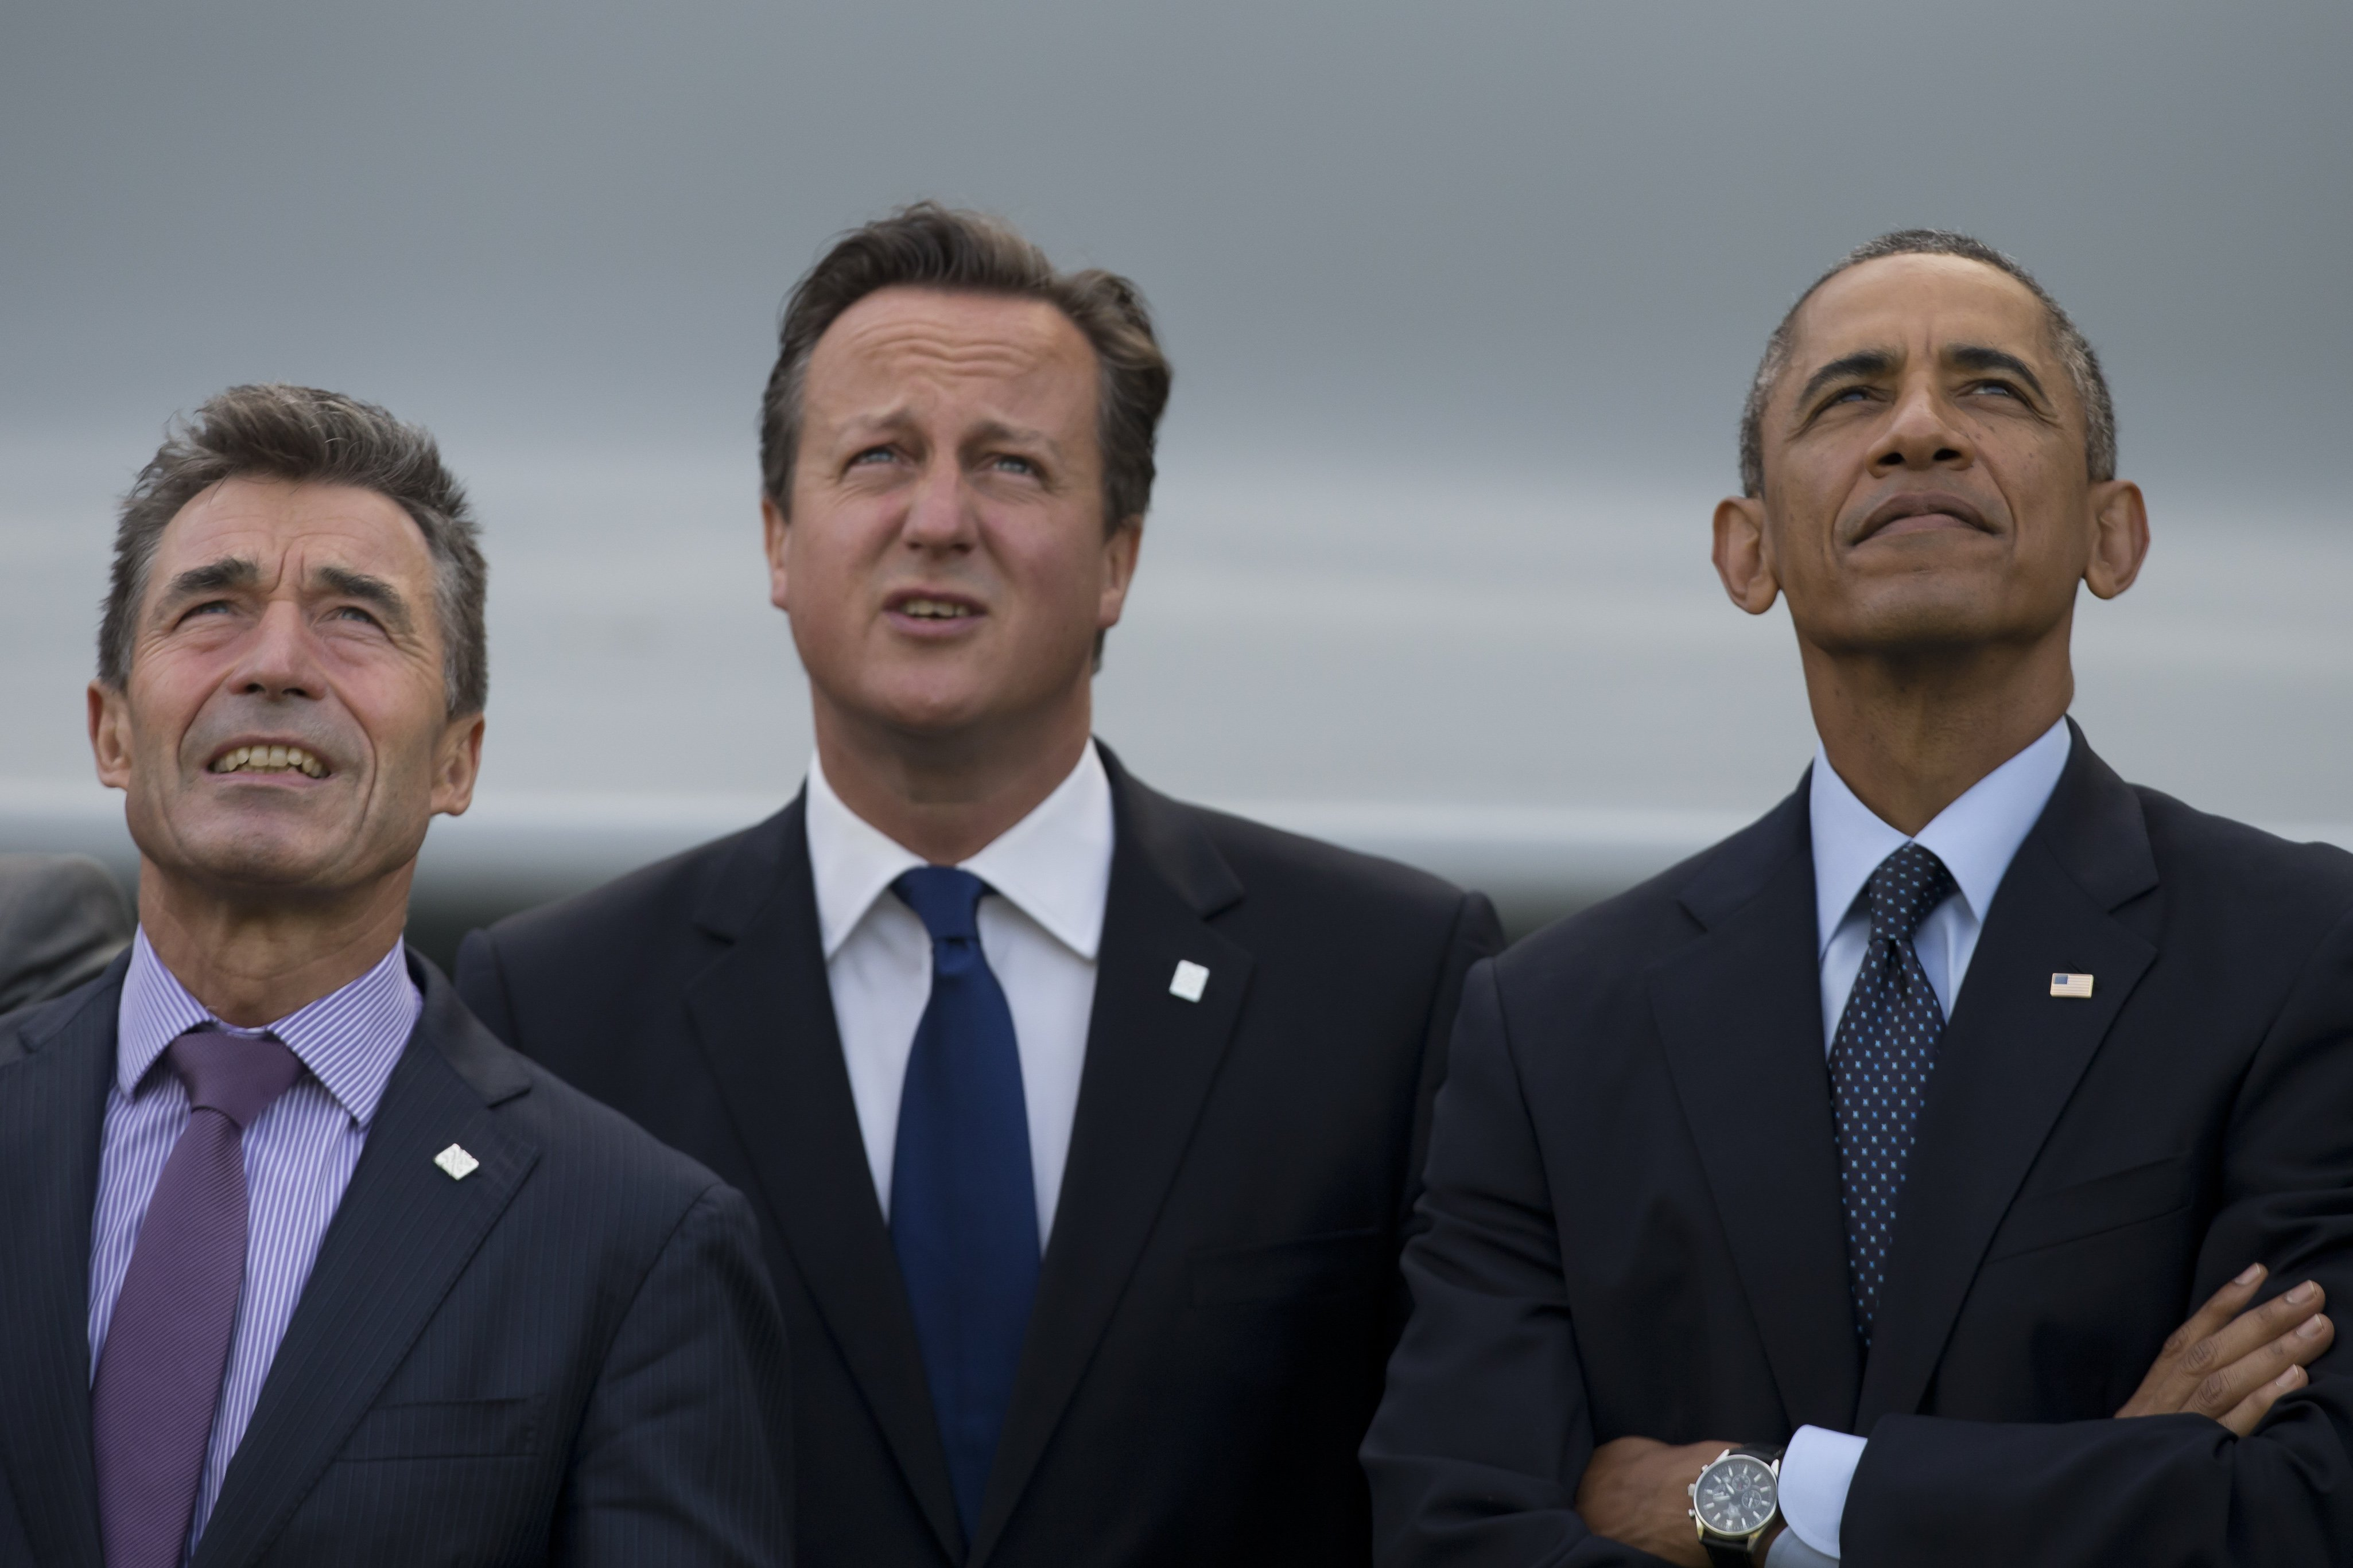 U.S. President Barack Obama, right, stands alongside British Prime Minister David Cameron, centre, and NATO Secretary General Anders Fogh Rasmussen during a flypast at the NATO summit at the Celtic Manor Resort in Newport, Wales on  Sept. 5, 2014.